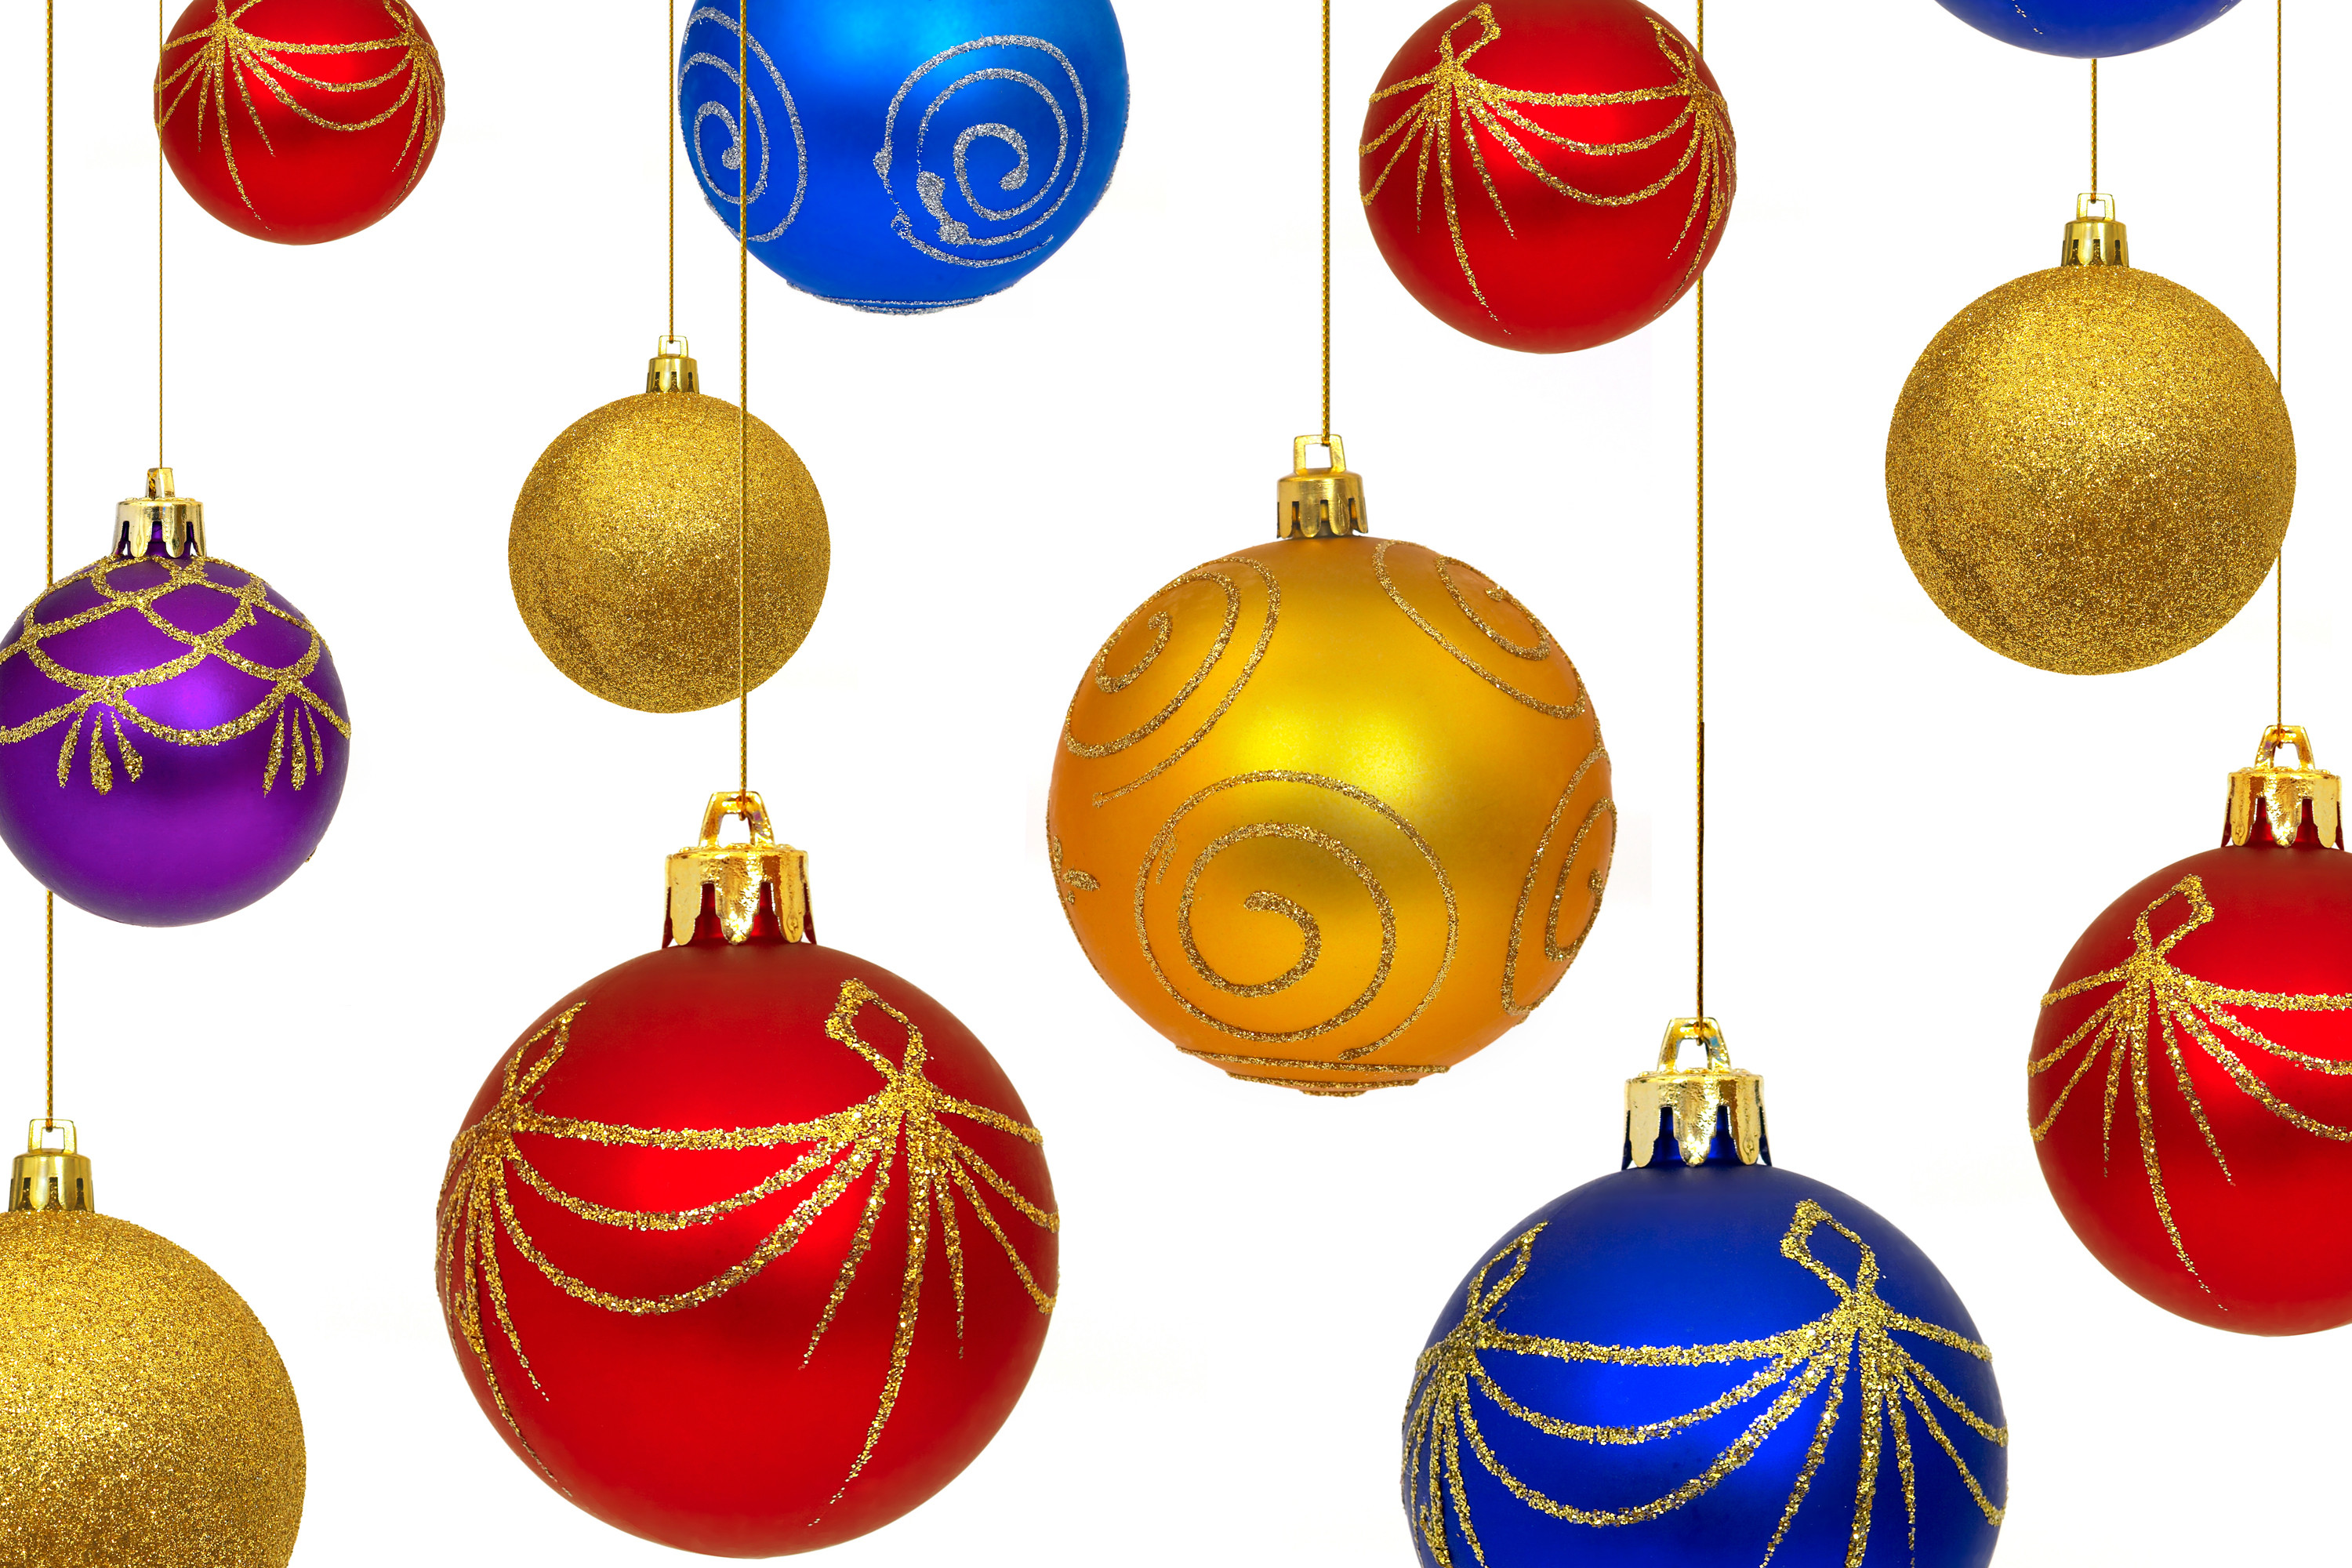 Luxury 5 Random Facts You Didn't Know About ornaments Christmas Tree Ball ornaments Of Charming 46 Ideas Christmas Tree Ball ornaments